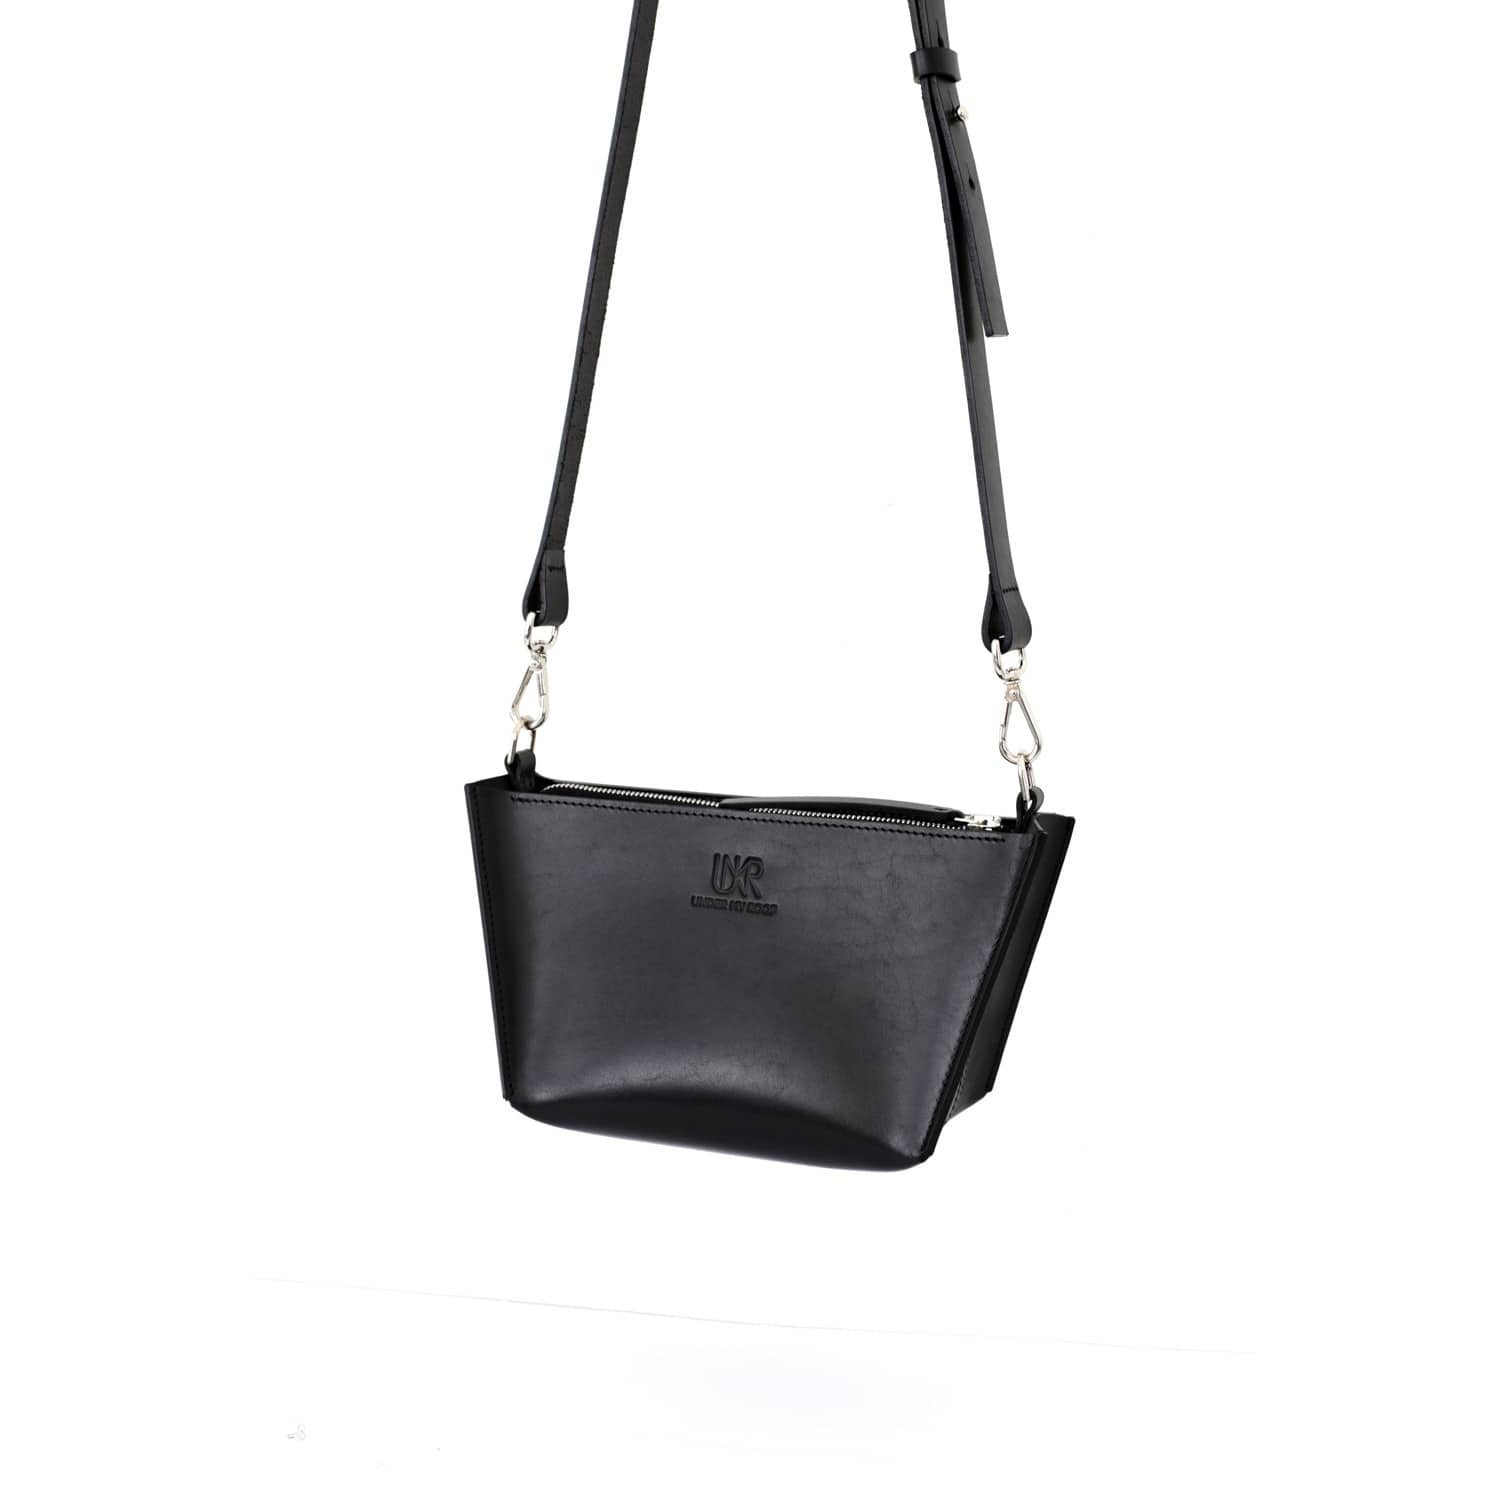 1755ed04bb8 Minimalist Chic Cross-Body Bag   Under My Roof   Wolf   Badger